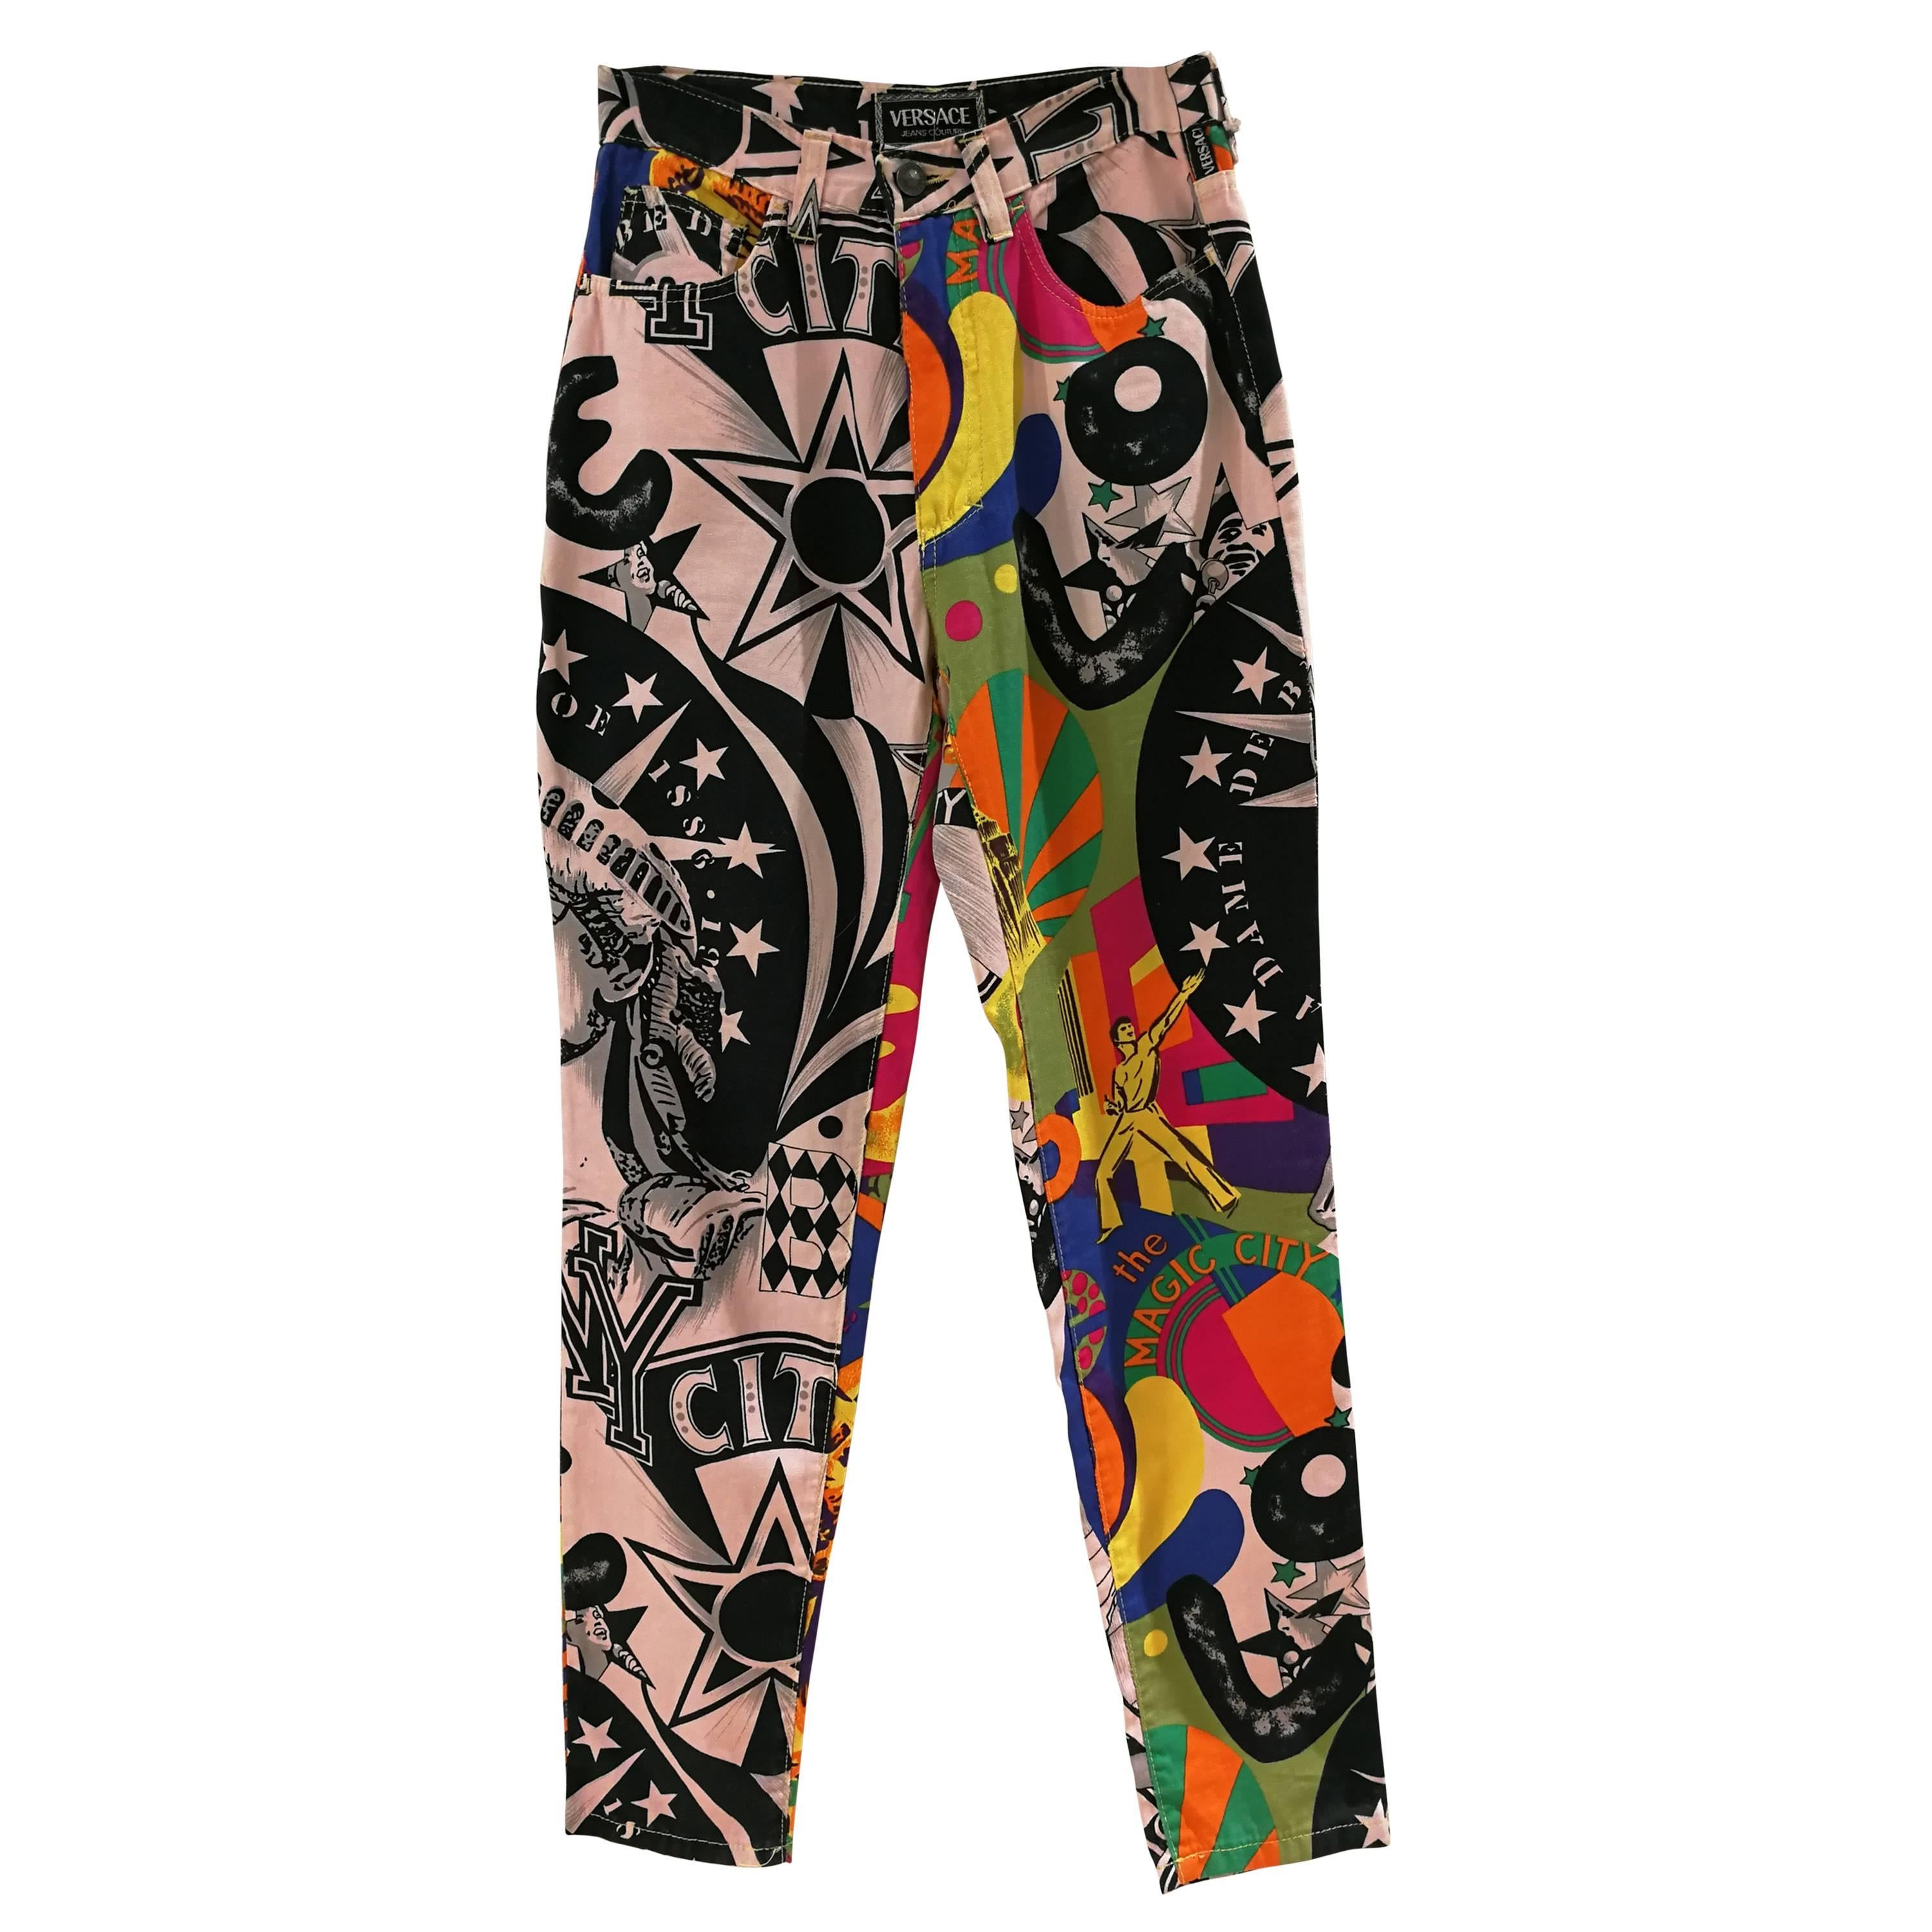 denim and leather skinny trousers - Multicolour Versace vyZW0